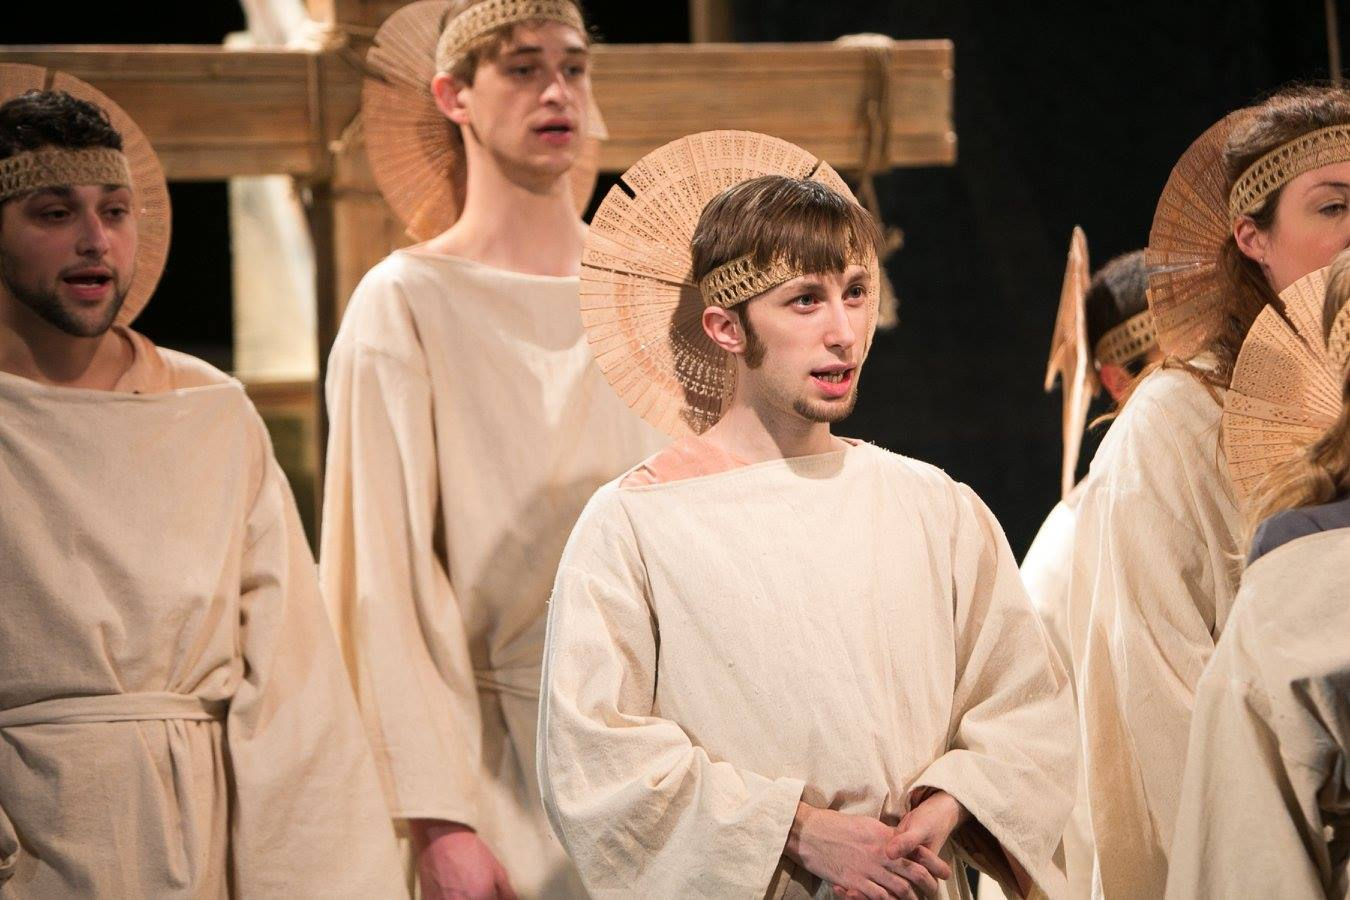 Homespun biblical ensemble in Act 1 of Sarah Ruhl's Passion Play costume design by Katharine Tarkulich